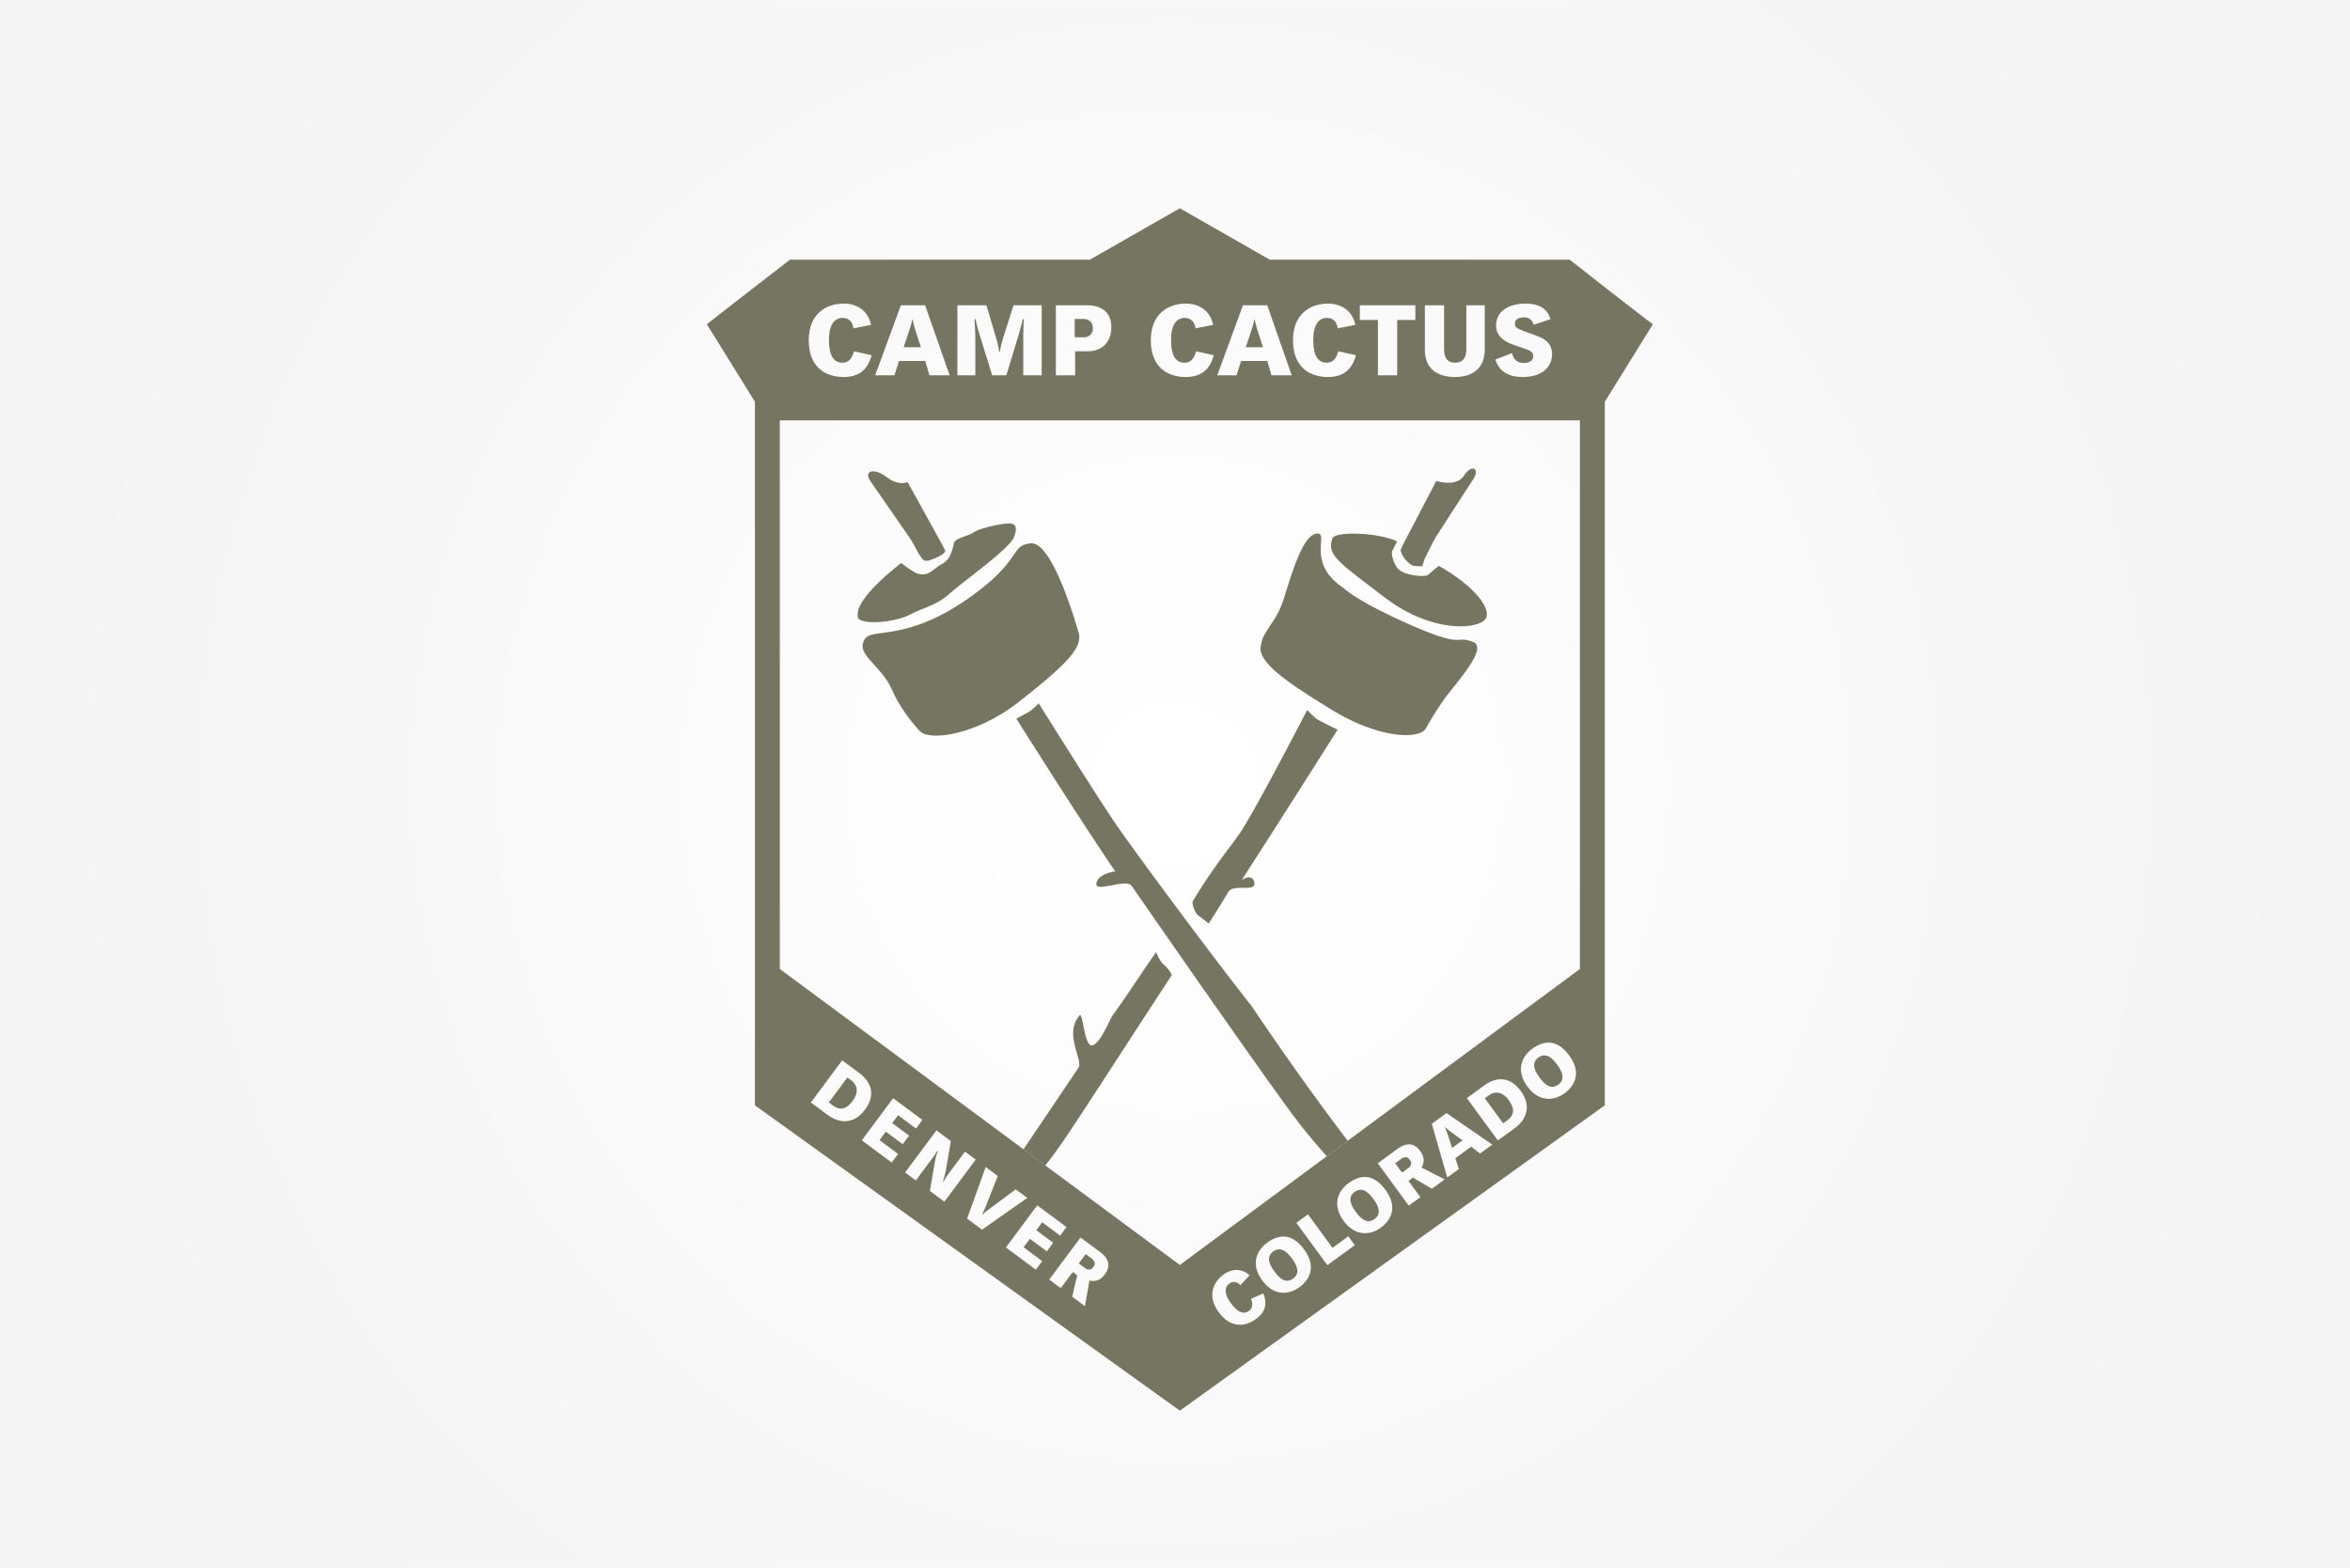 Designed while working for   Cactus Denver  .